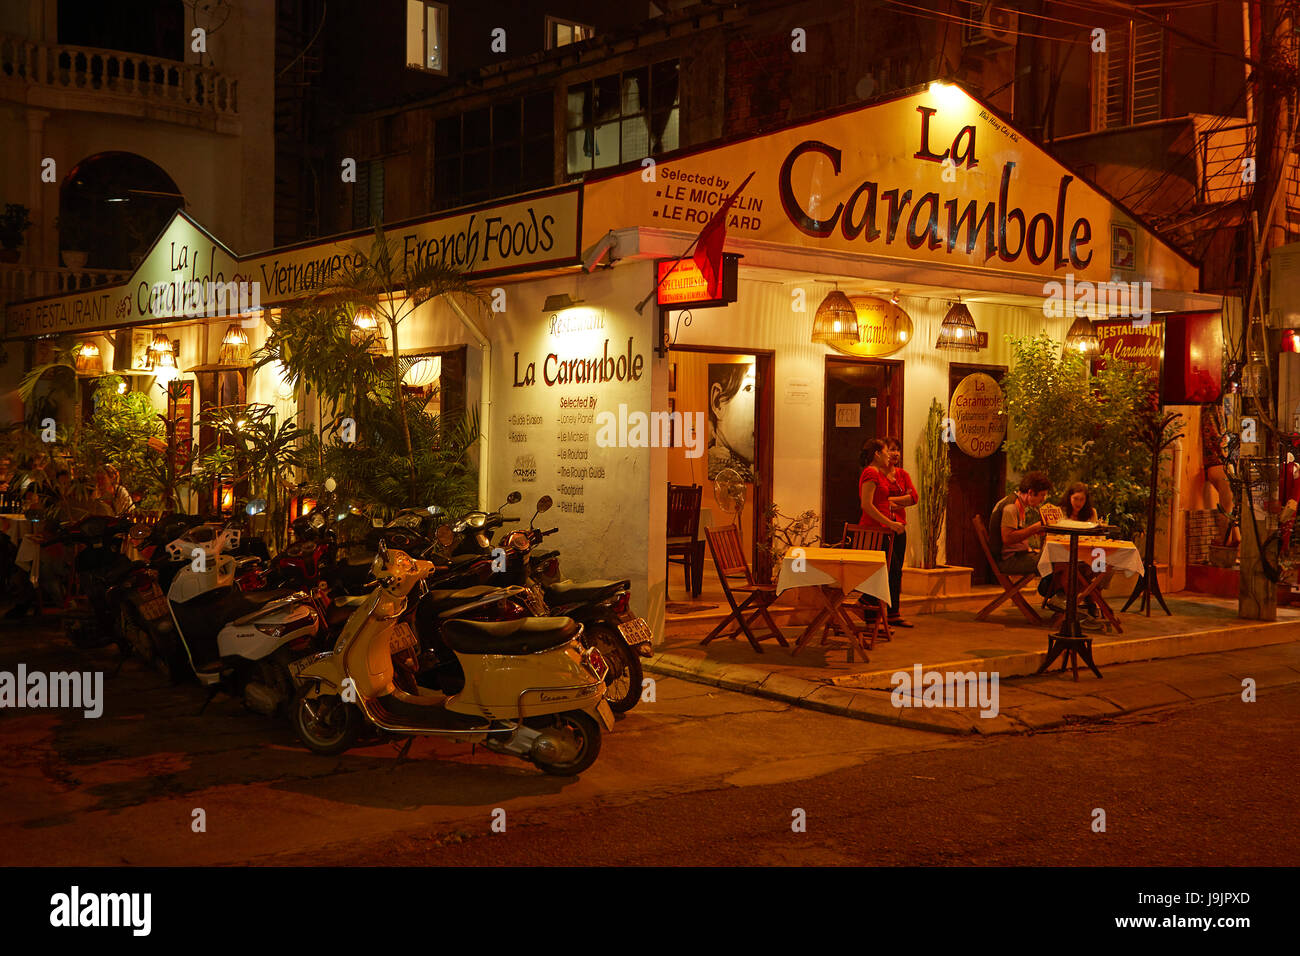 Restaurant La Carambole, Hue, North Central Coast, Vietnam Stockbild